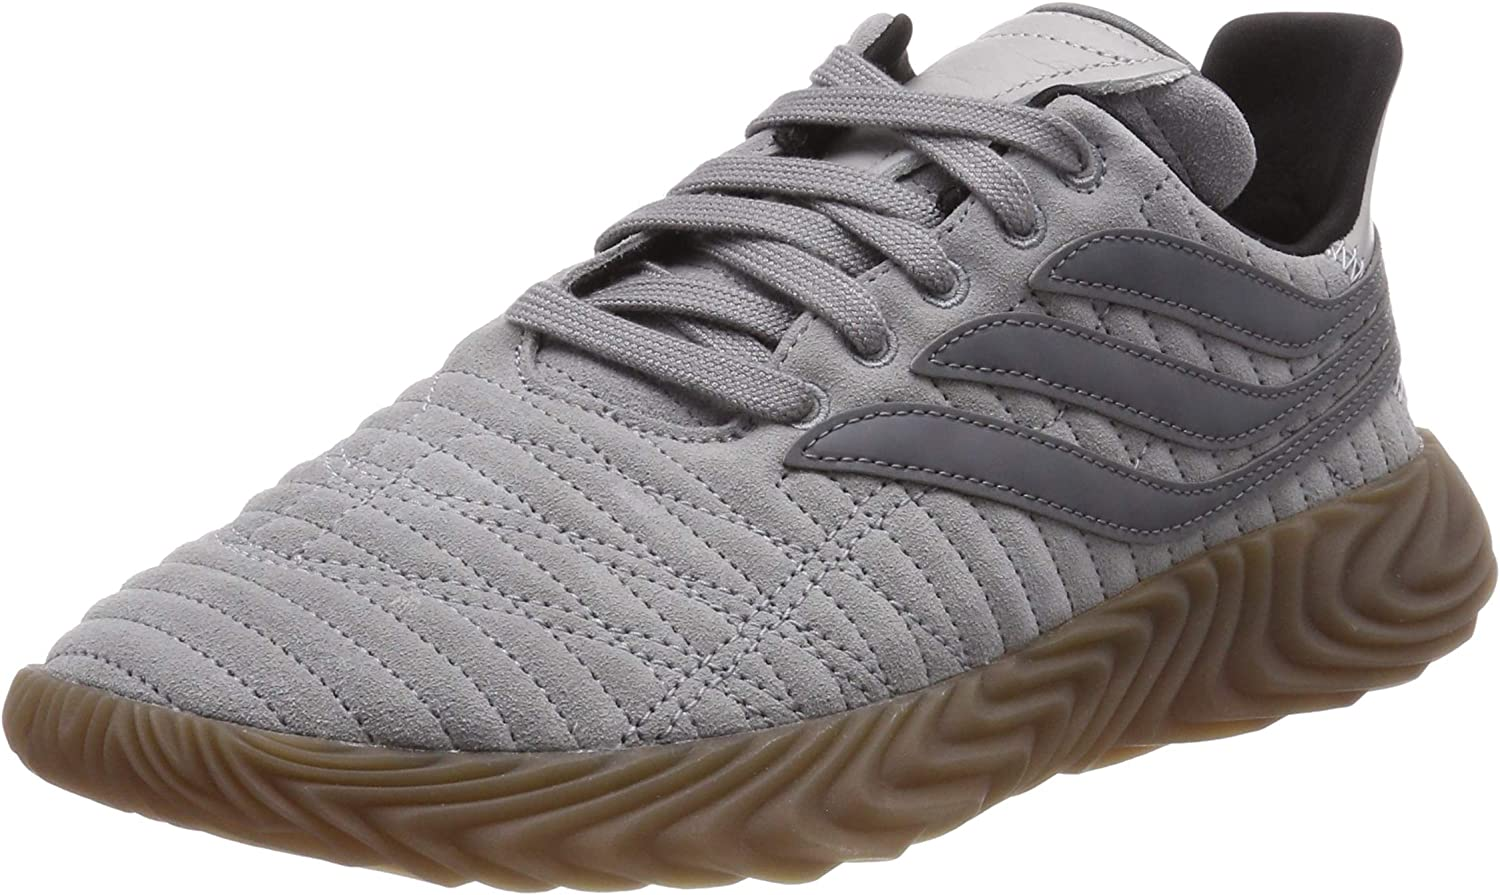 adidas Sobakov, Chaussures de Fitness Homme Multicolore Gritre Gricua Gridos 000